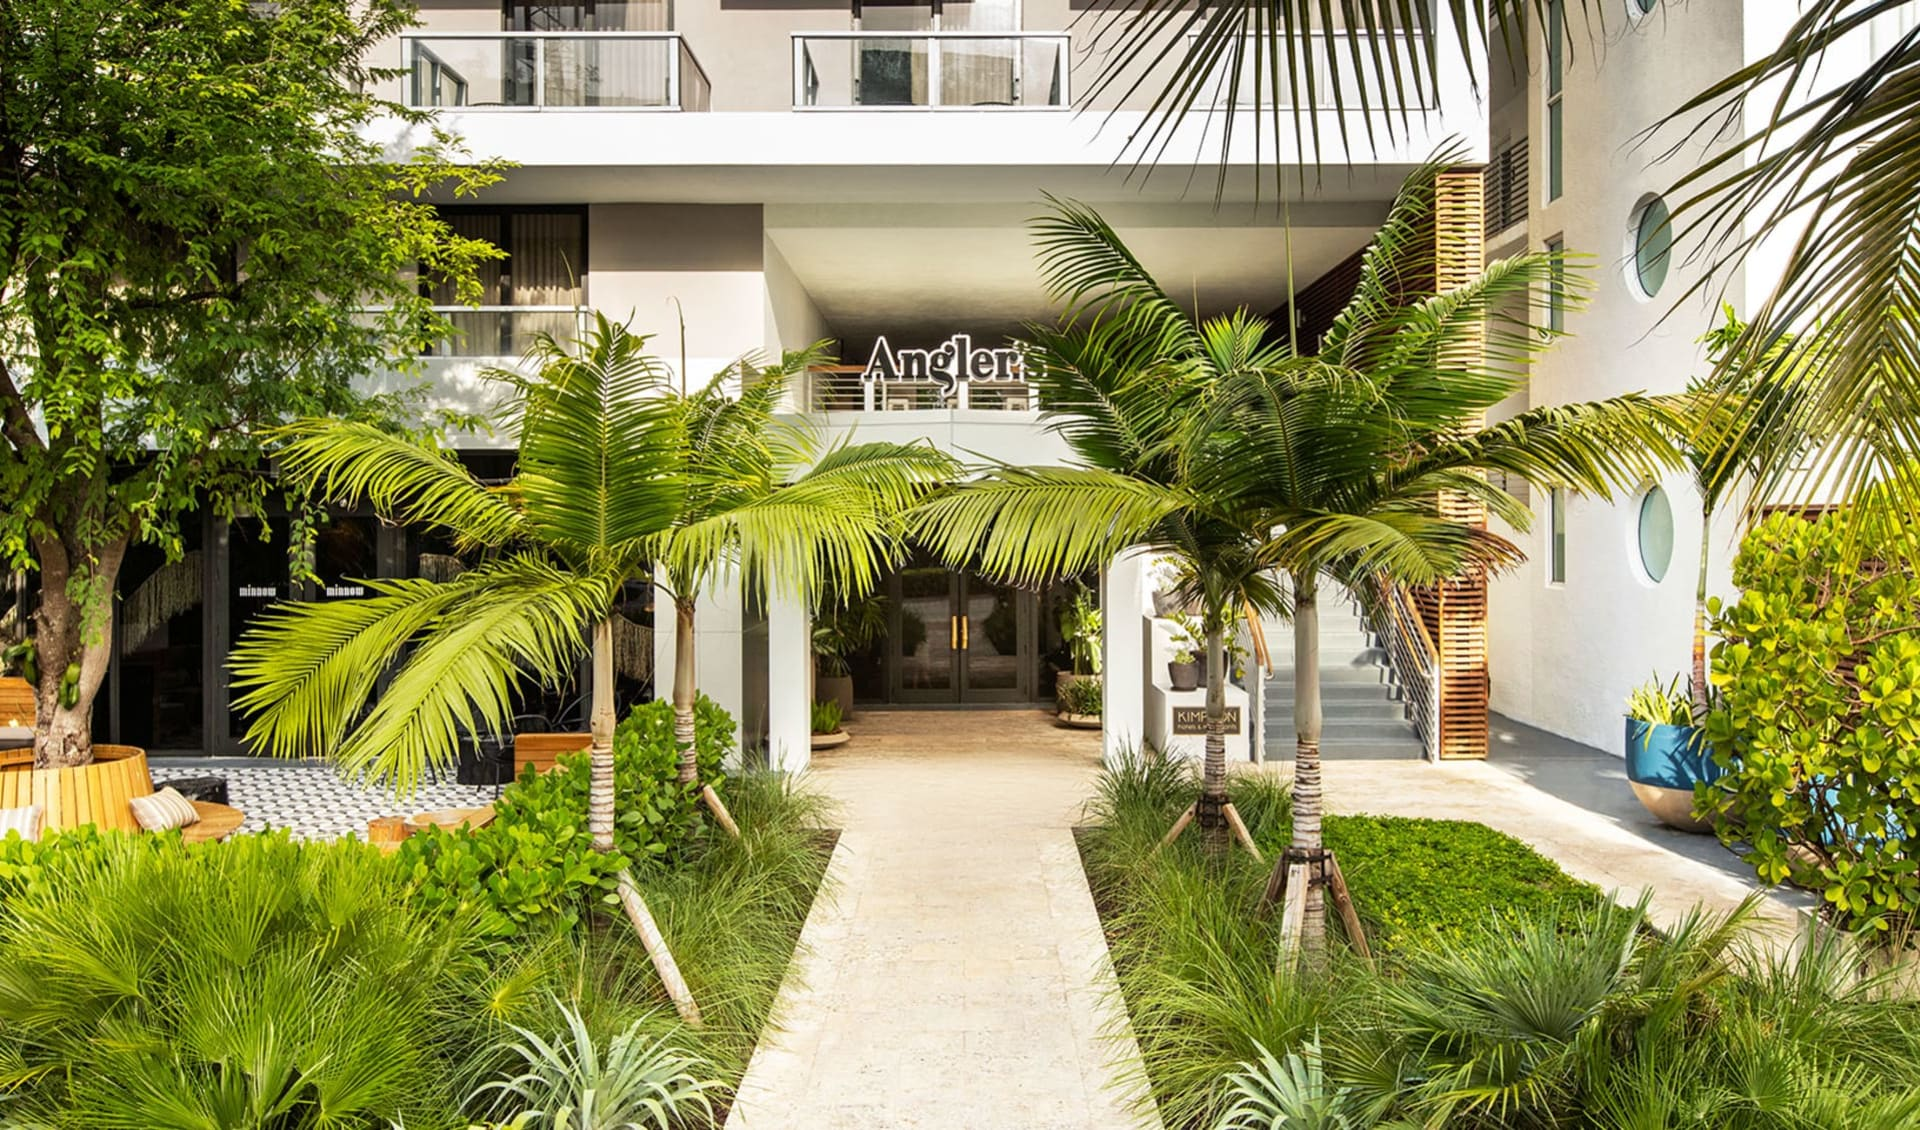 Kimpton Angler's Hotel South Beach in Miami Beach:  The Anglers - Aussenansicht